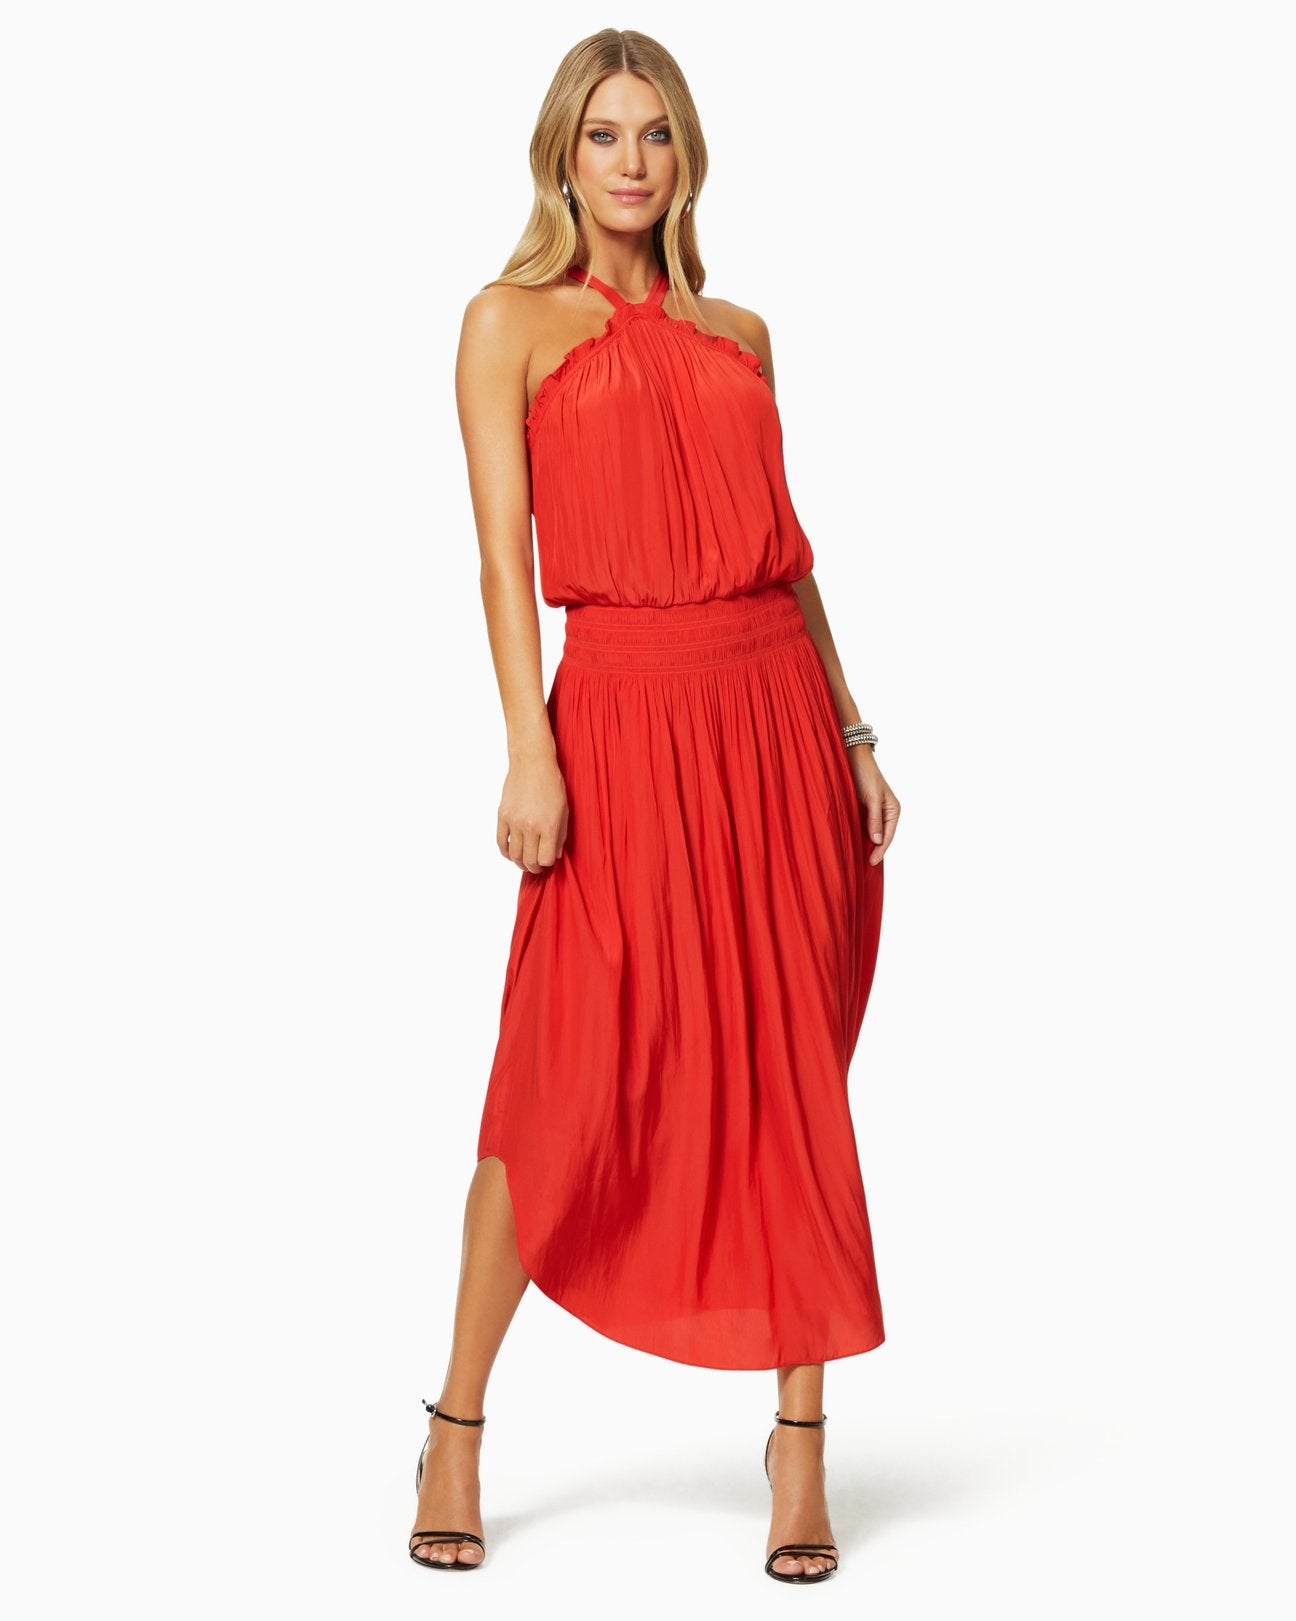 Ramy Brook Chloe Dress - Bright Red